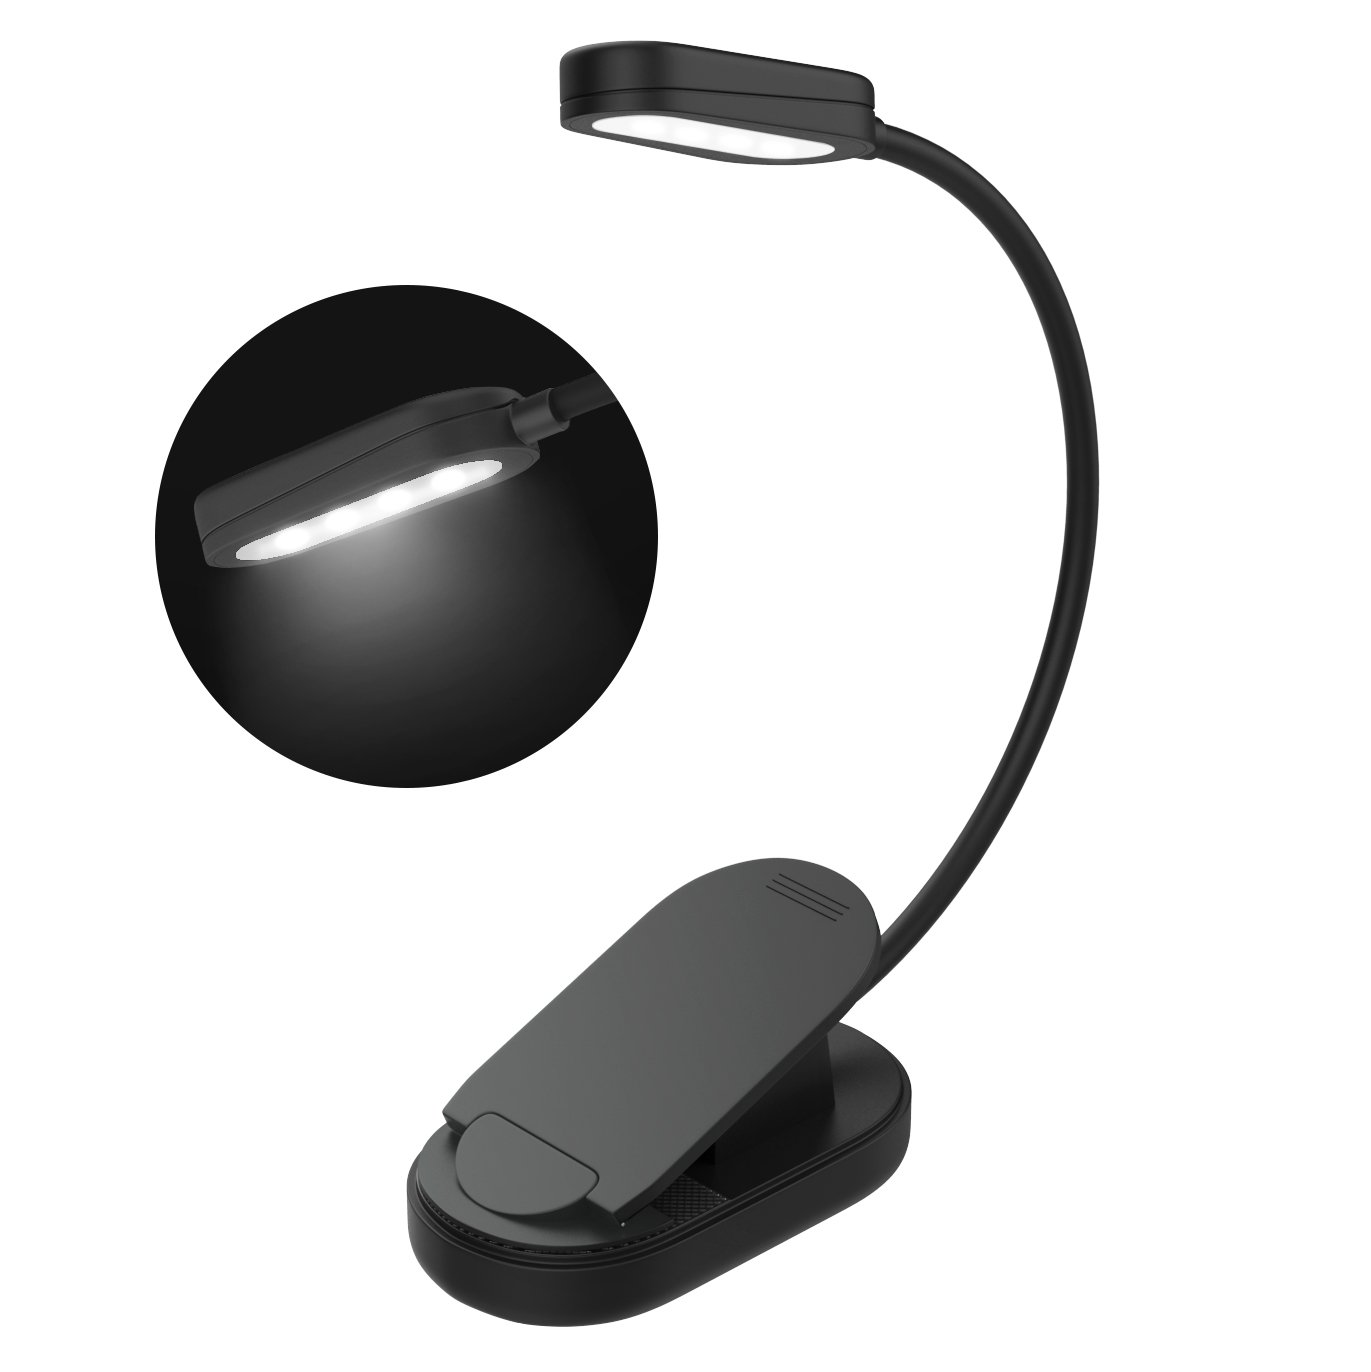 Rechargeable Book Light, MoKo LED Reading Light Flexible Easy Clip On Bed Lamp 2 Levels Brightness with Good Eye Protection for Night Reading, Bookworms, Readers, Kids - Black DS114